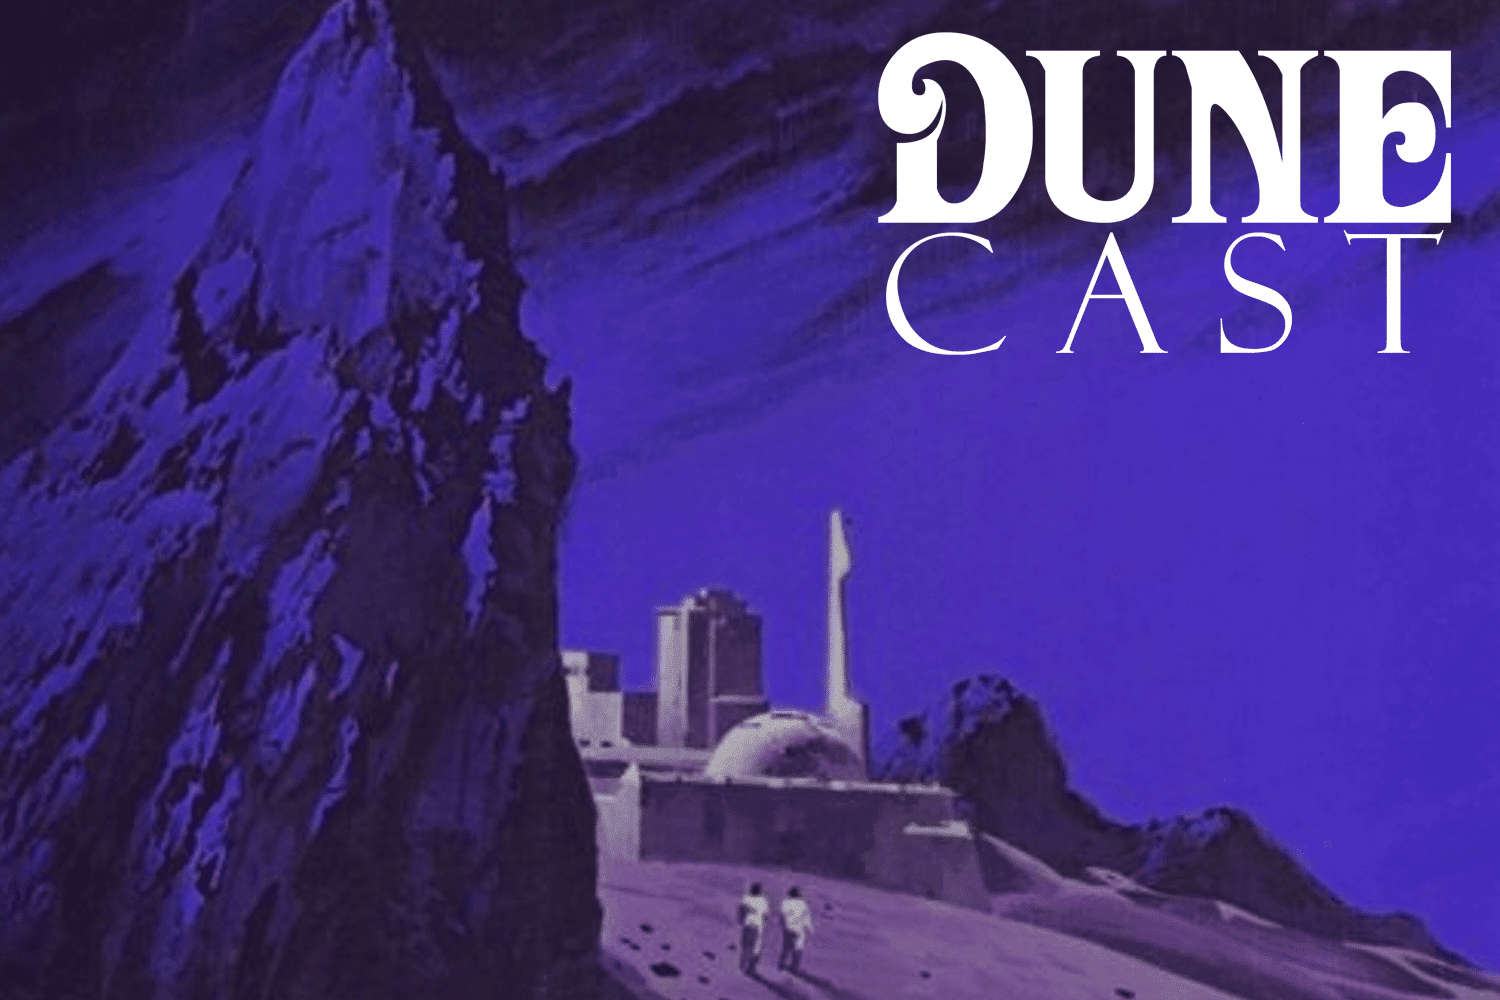 Dune Cast #3.2: Children of Dune (1976)